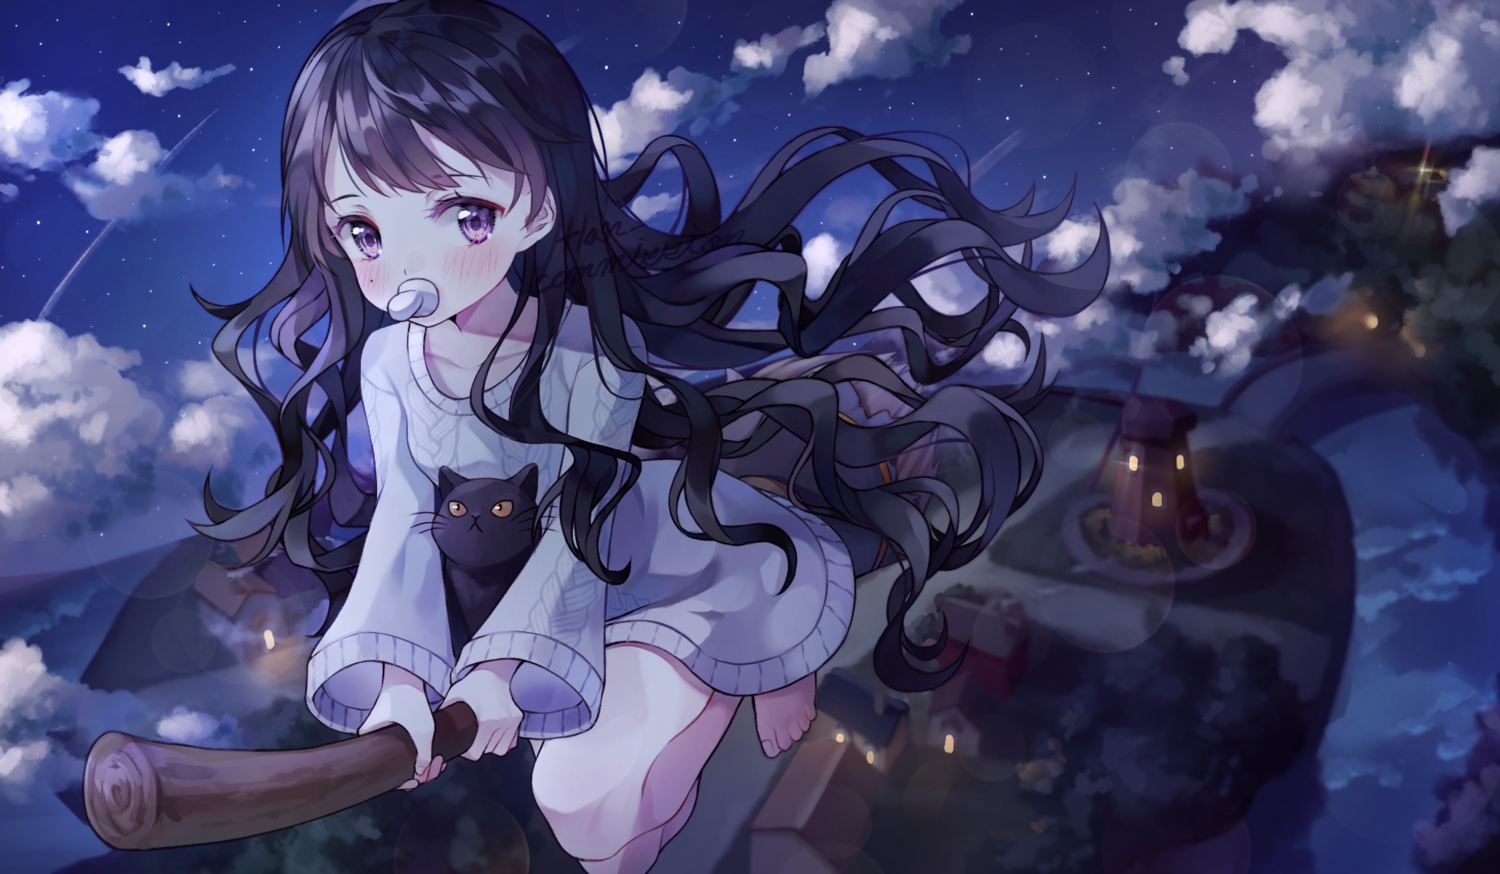 animal black_hair blush building cat clouds han_seol landscape loli long_hair night original purple_eyes scenic sky water windmill witch